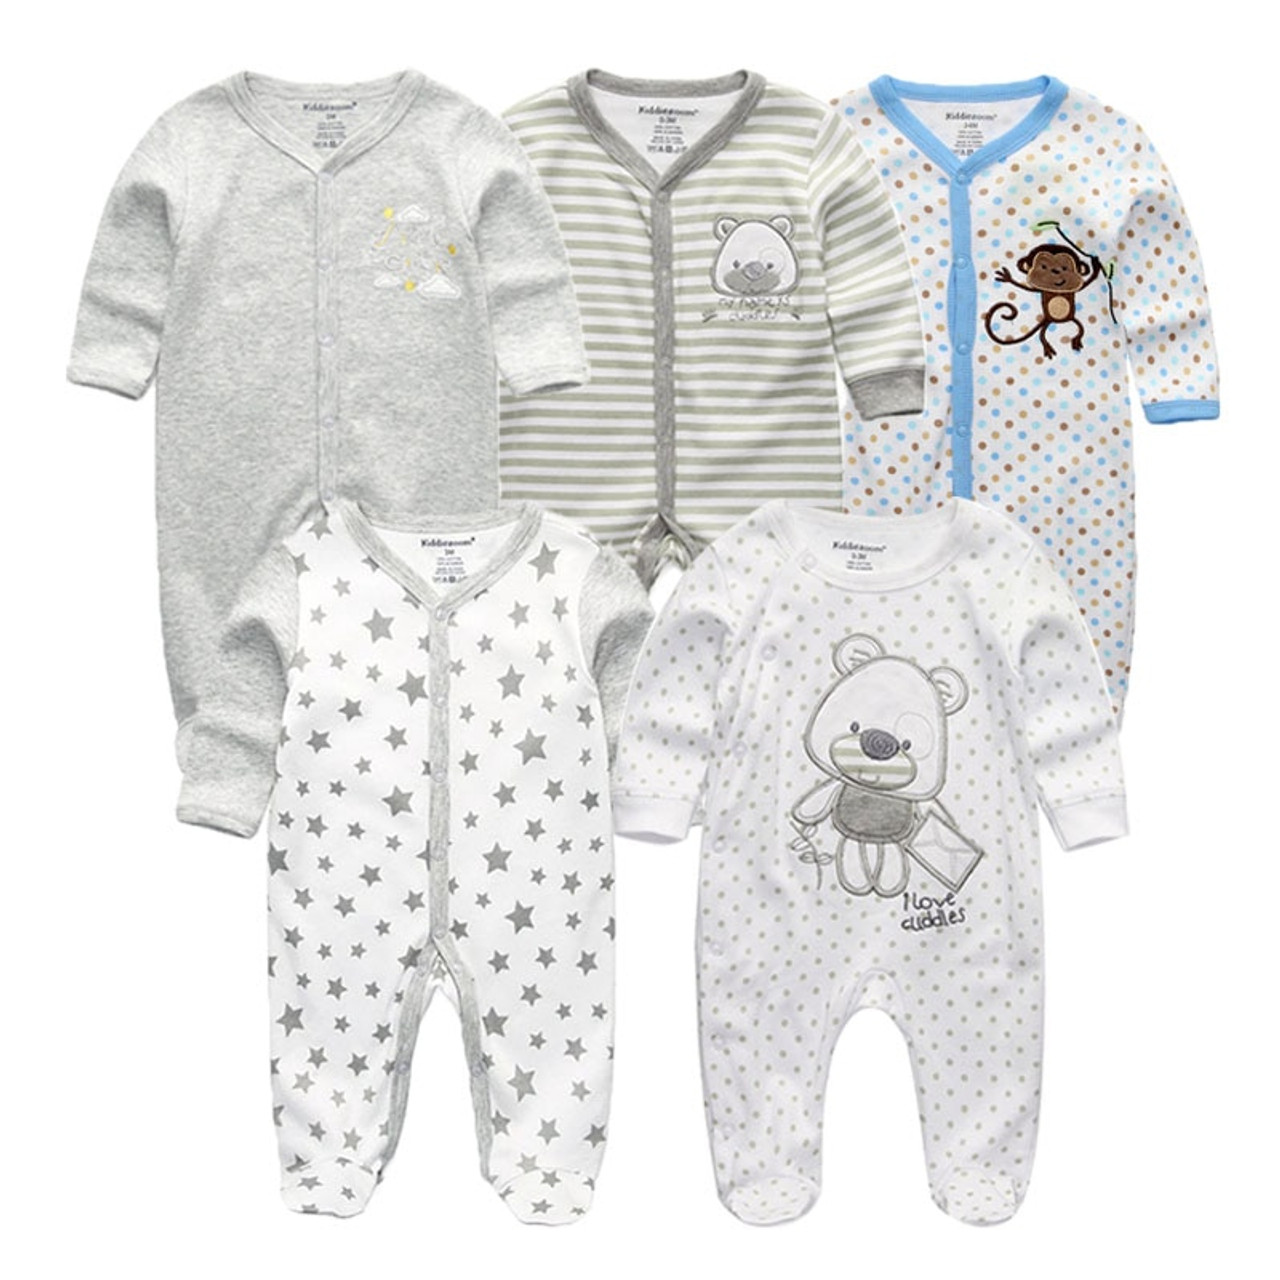 01fdbeed8da2 newbron 2018 winter long Sleeve baby rompers set Cotton baby jumpsuit boy  baby girl romper roupa ...